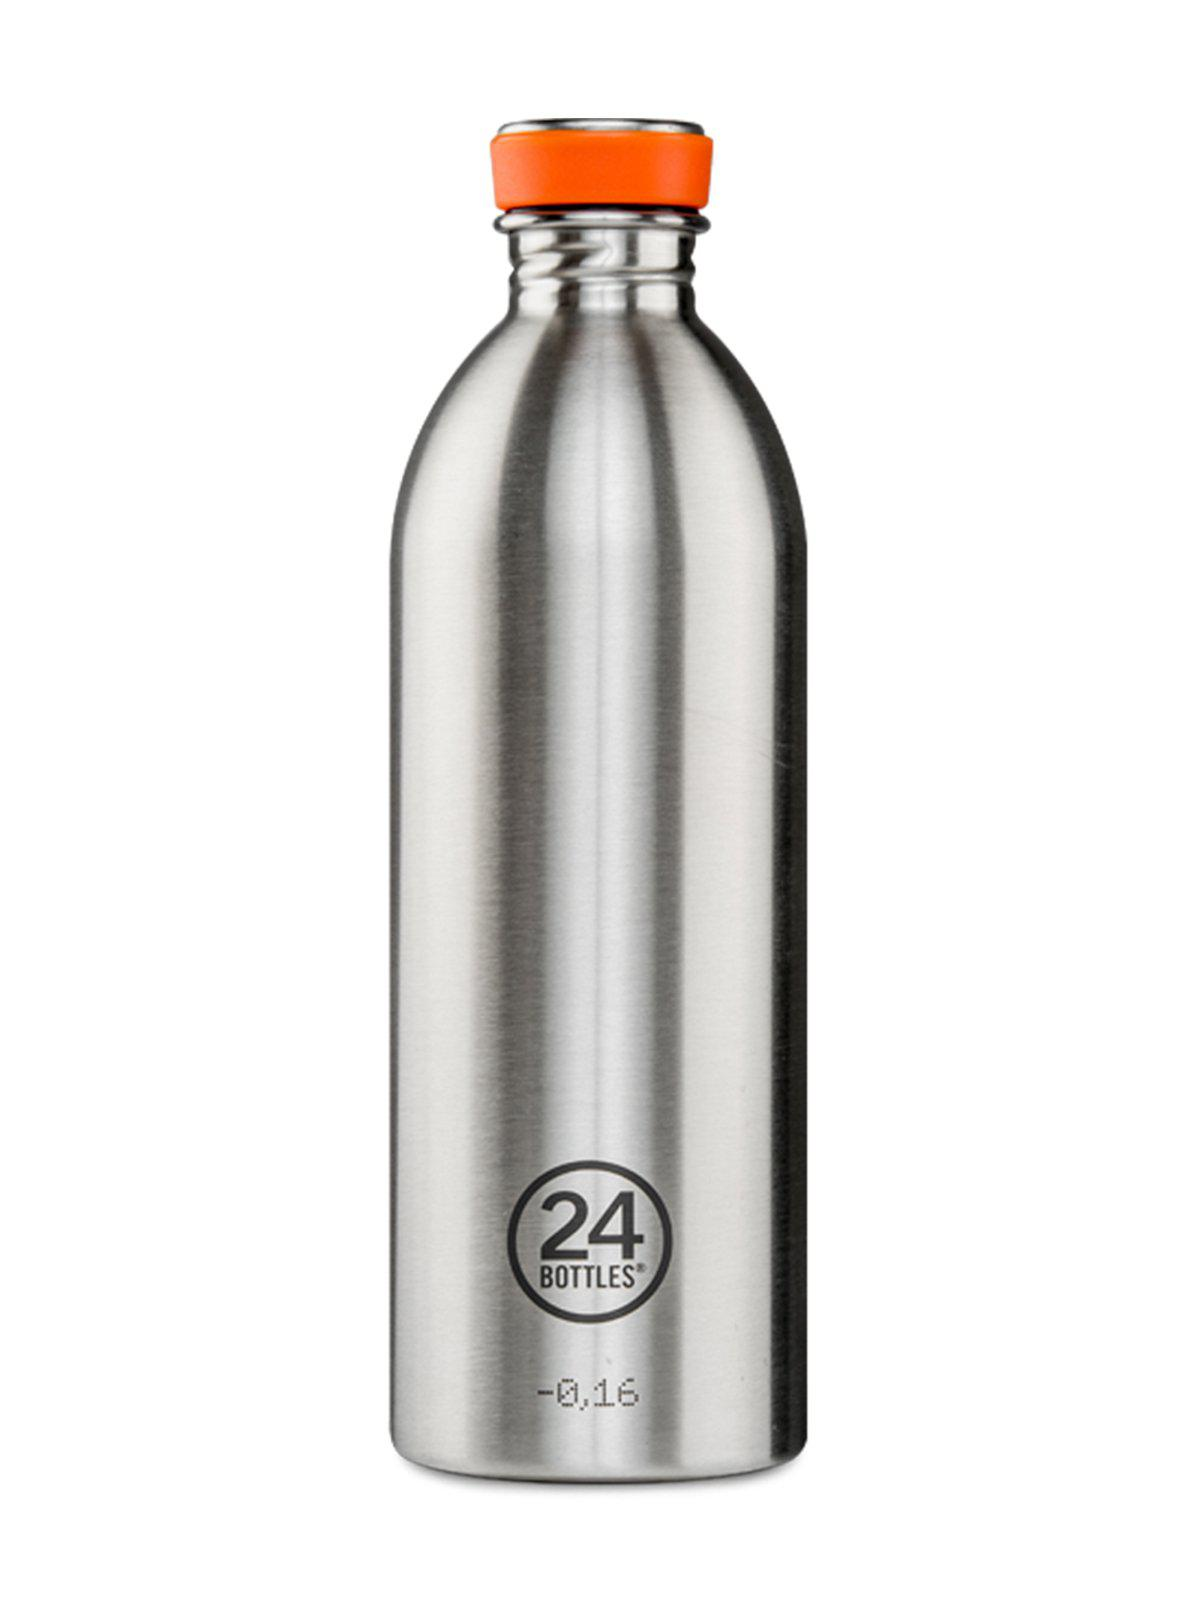 24Bottles Urban Bottle Steel 1000ml - MORE by Morello - Indonesia